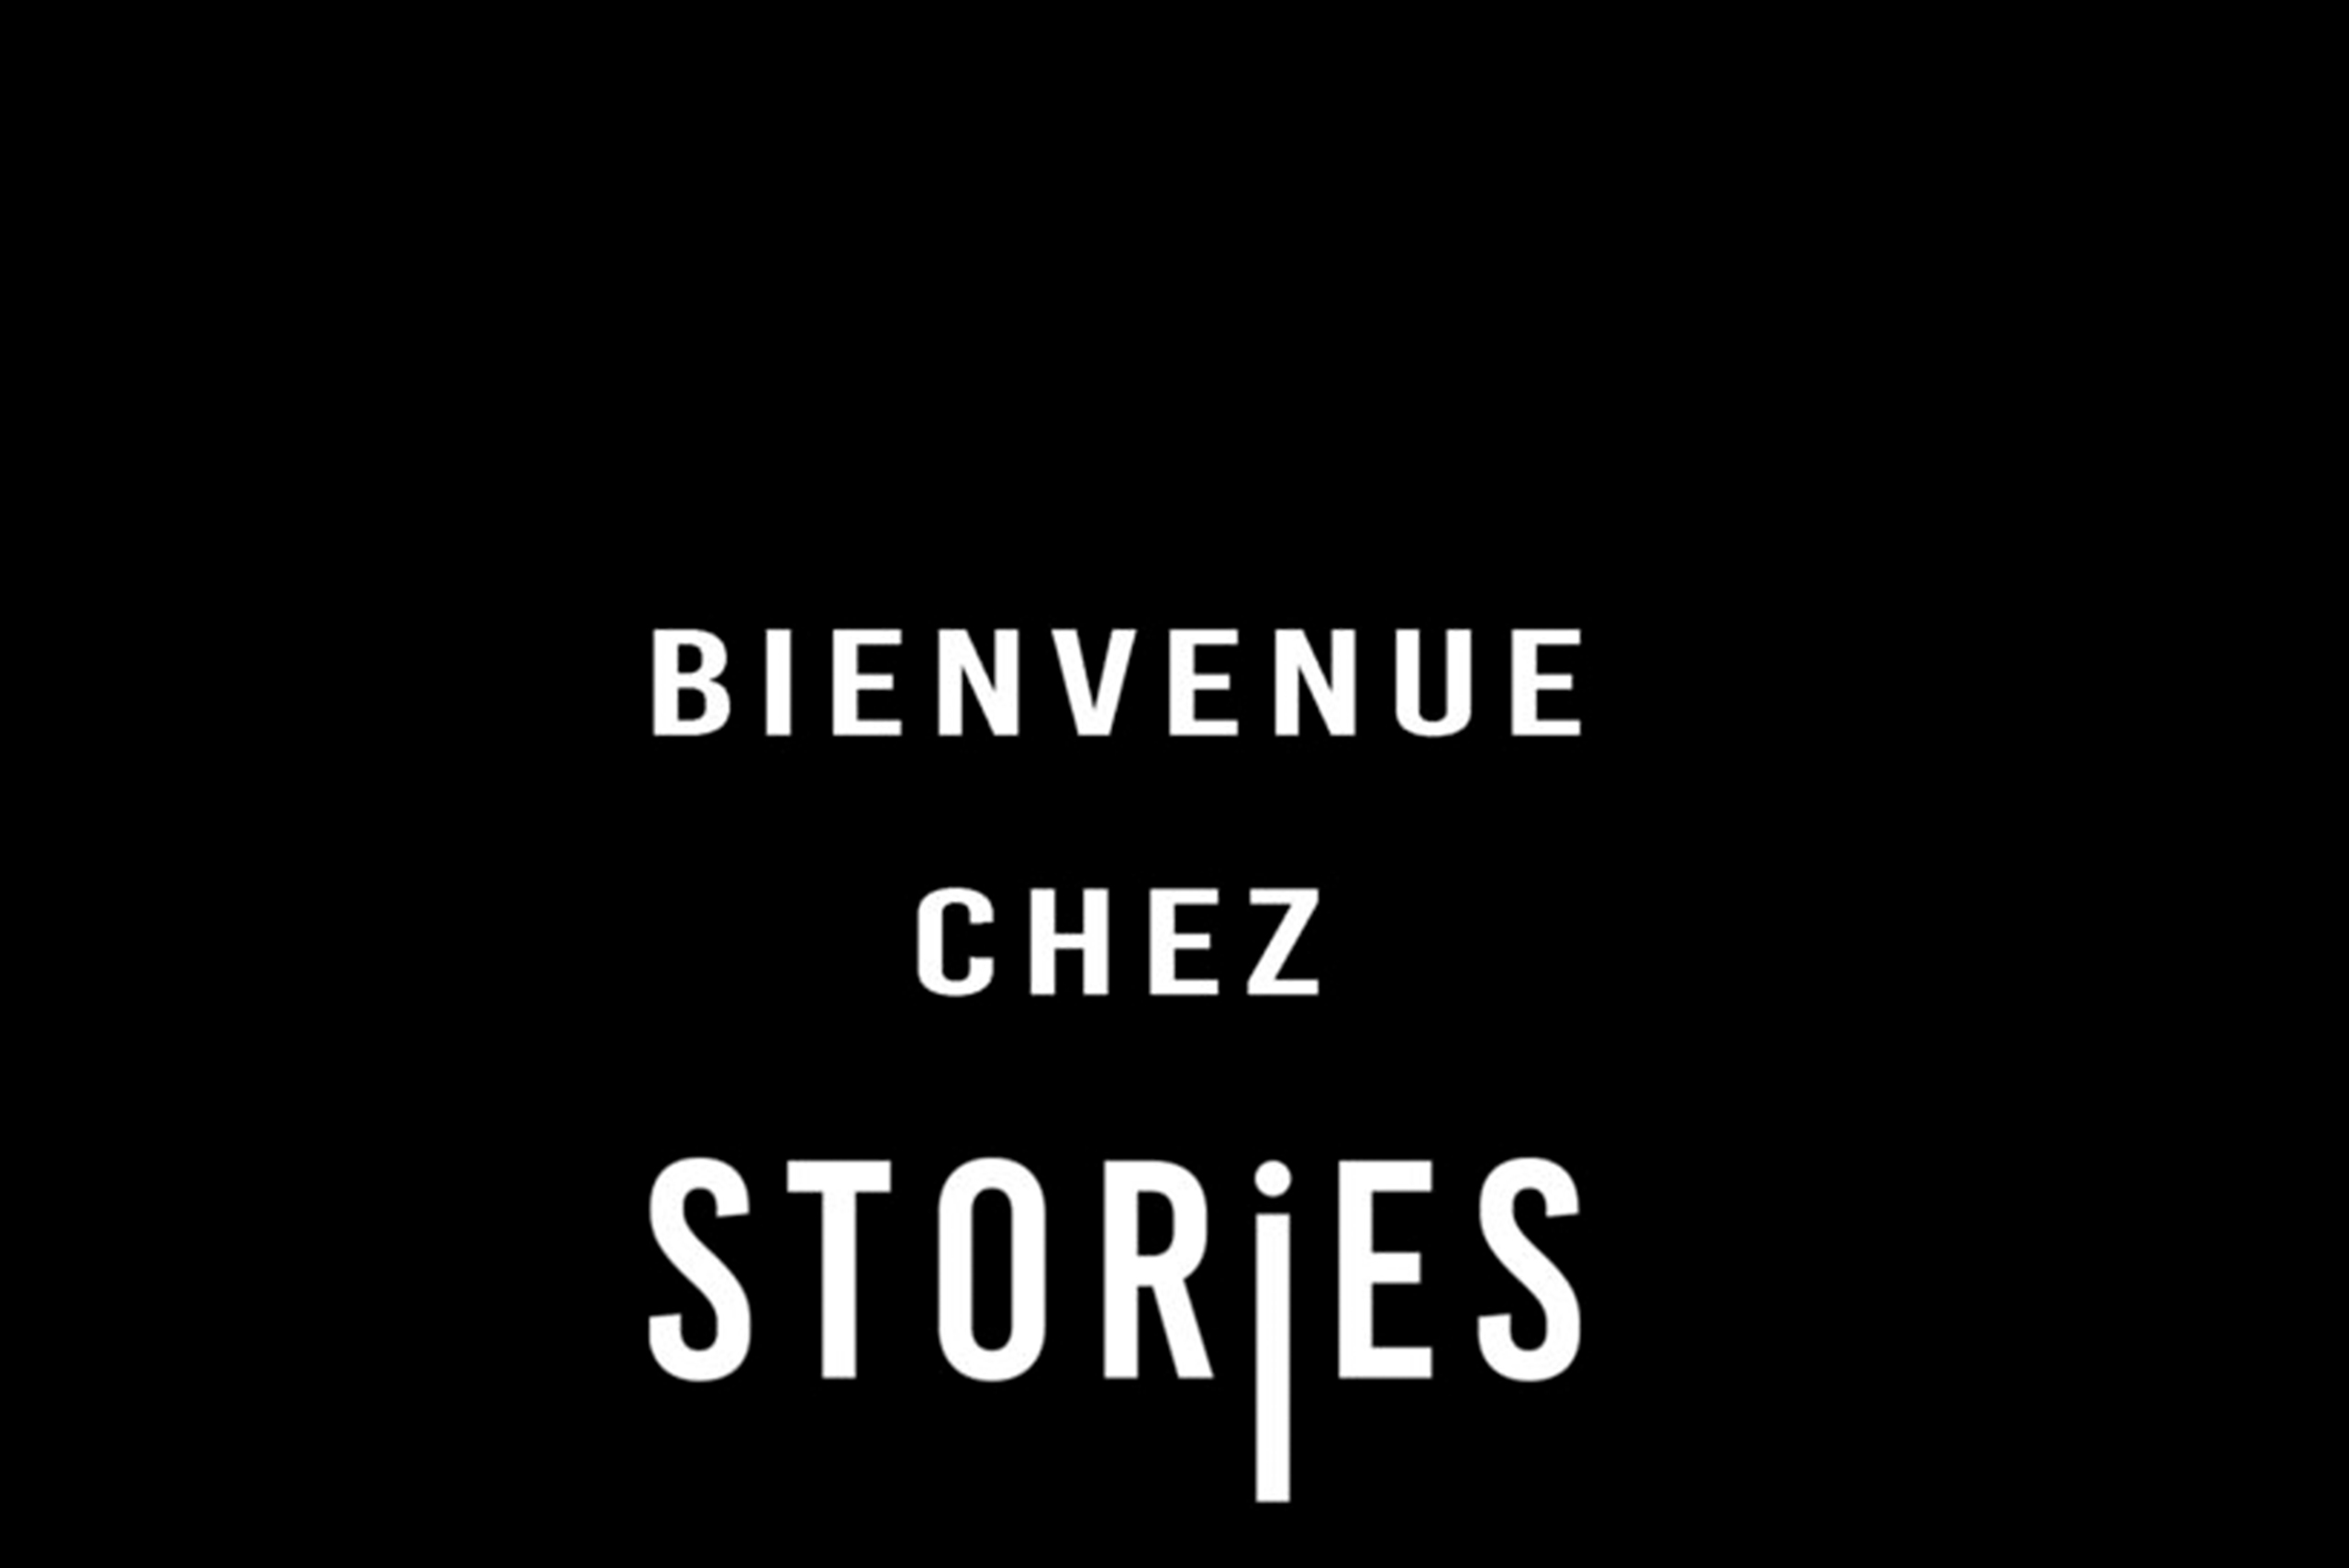 3-choses-StorIes